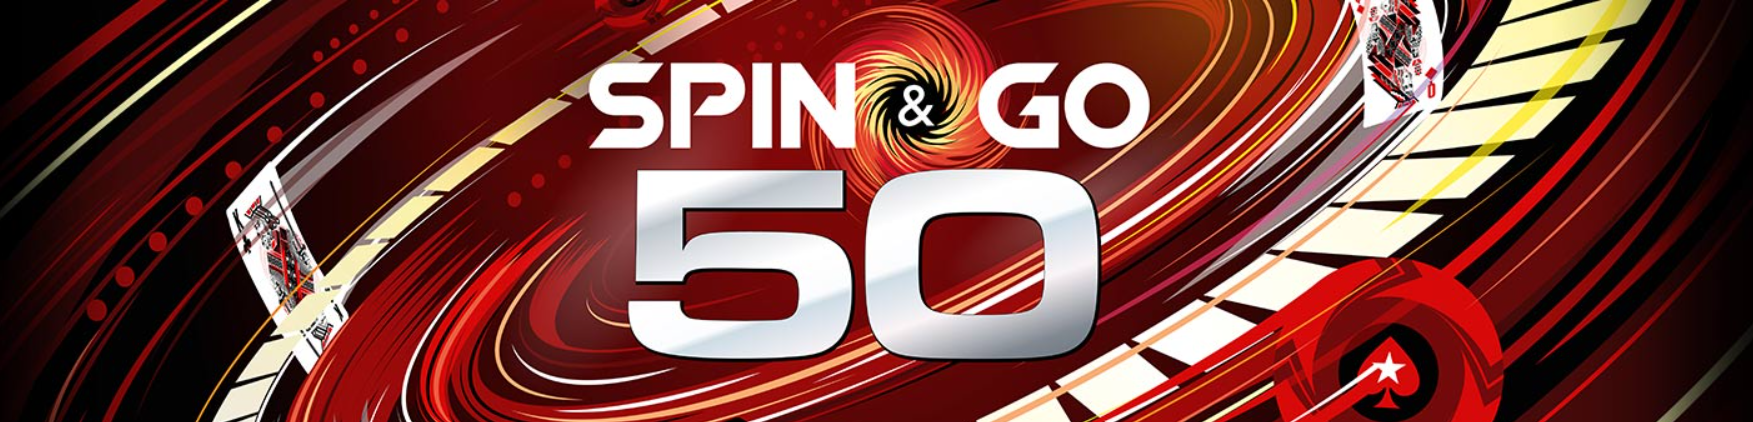 50 spin&go